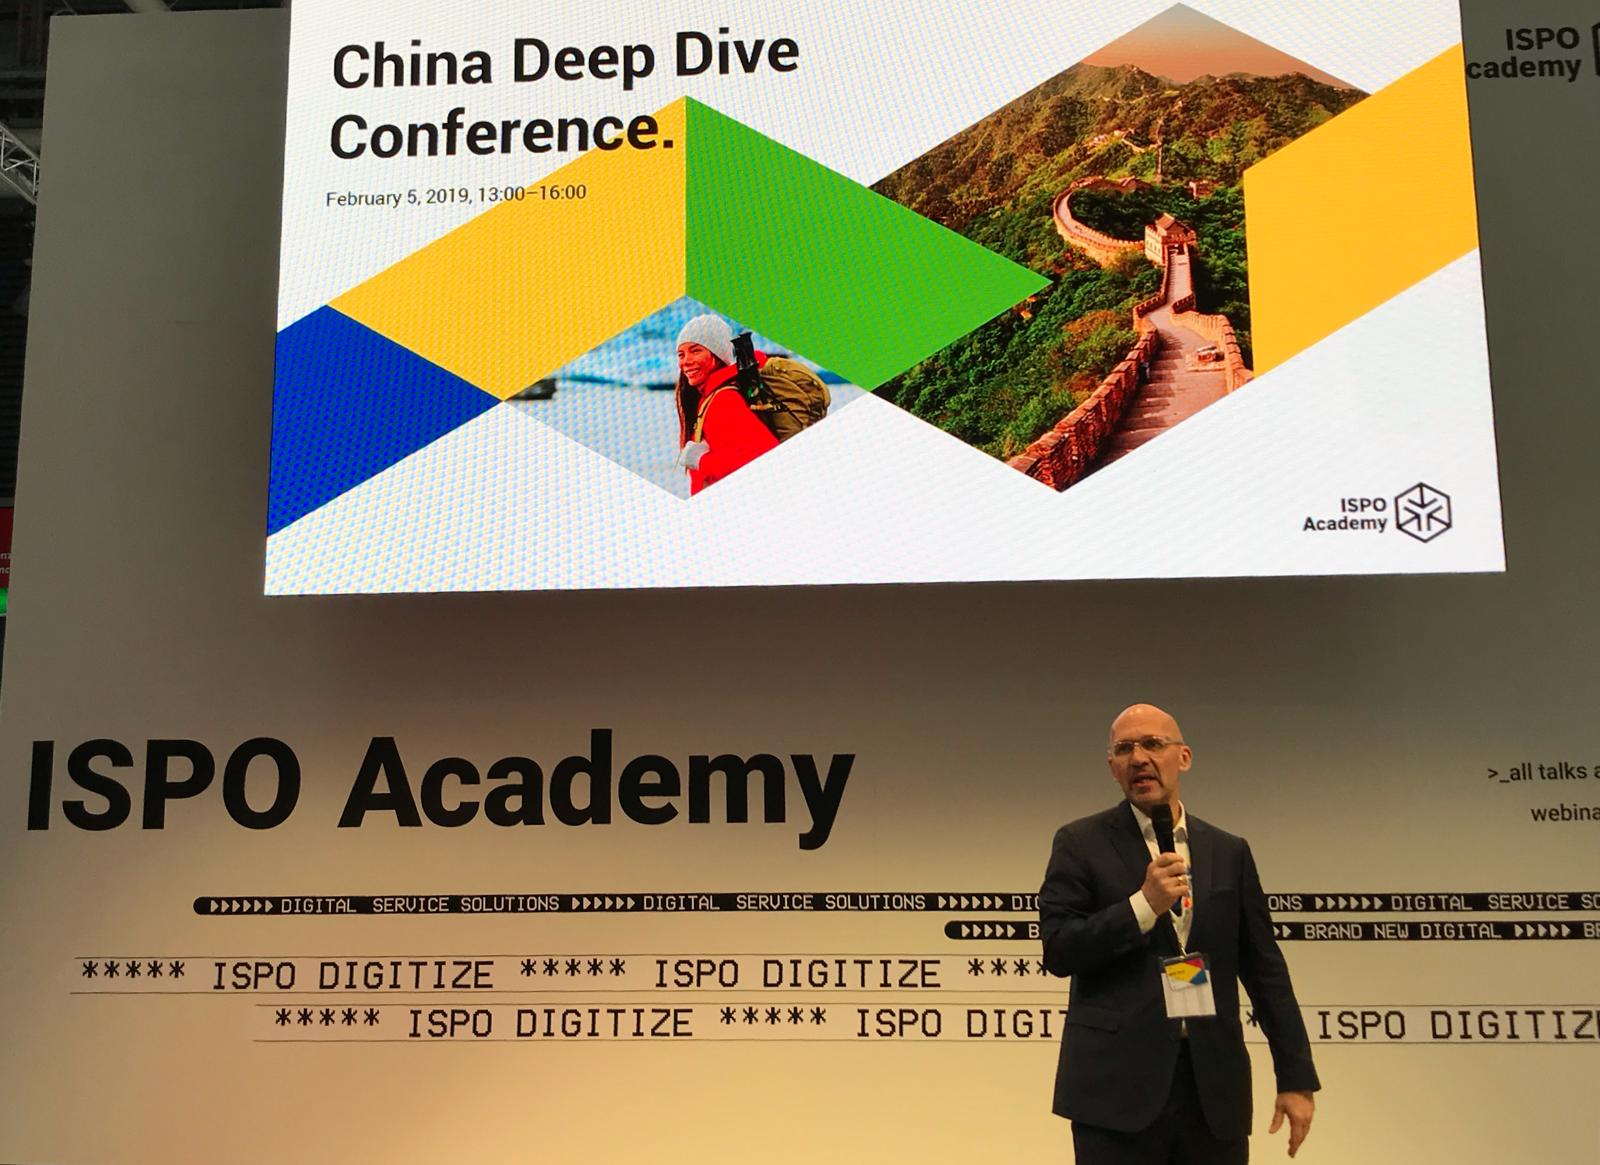 China_Deep_Dive_Conference